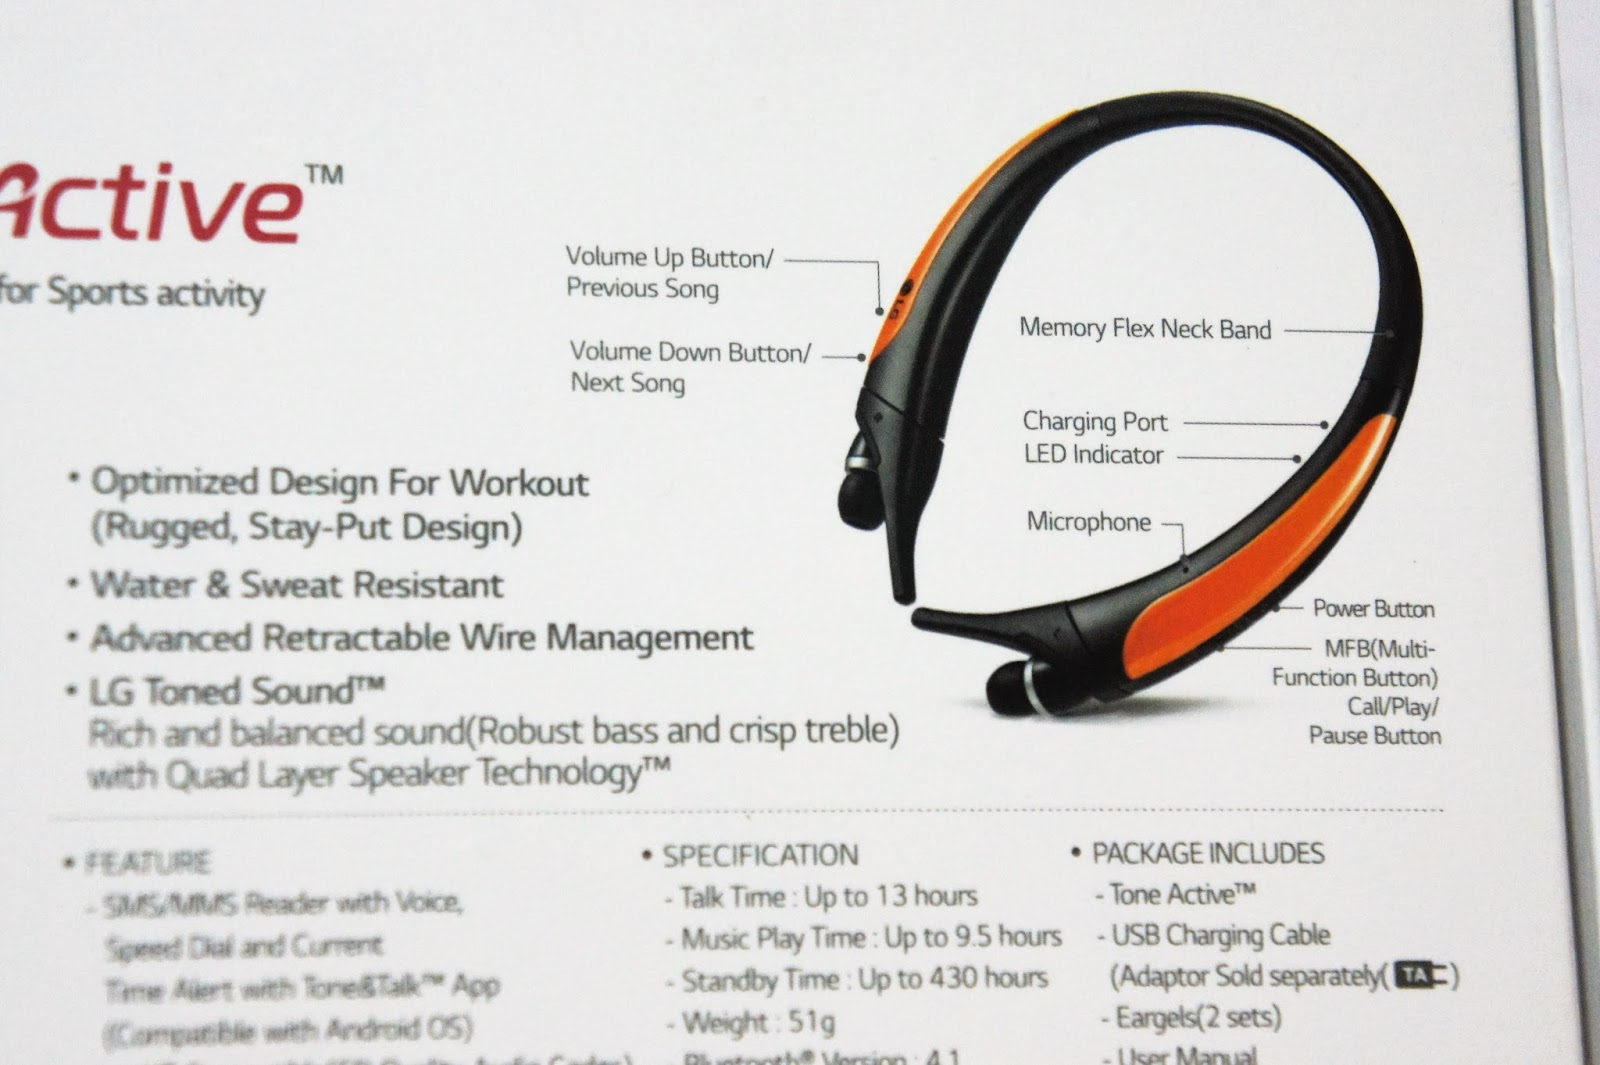 The Best Bluetooth Sports Headset? Part 2 : LG TONE Active